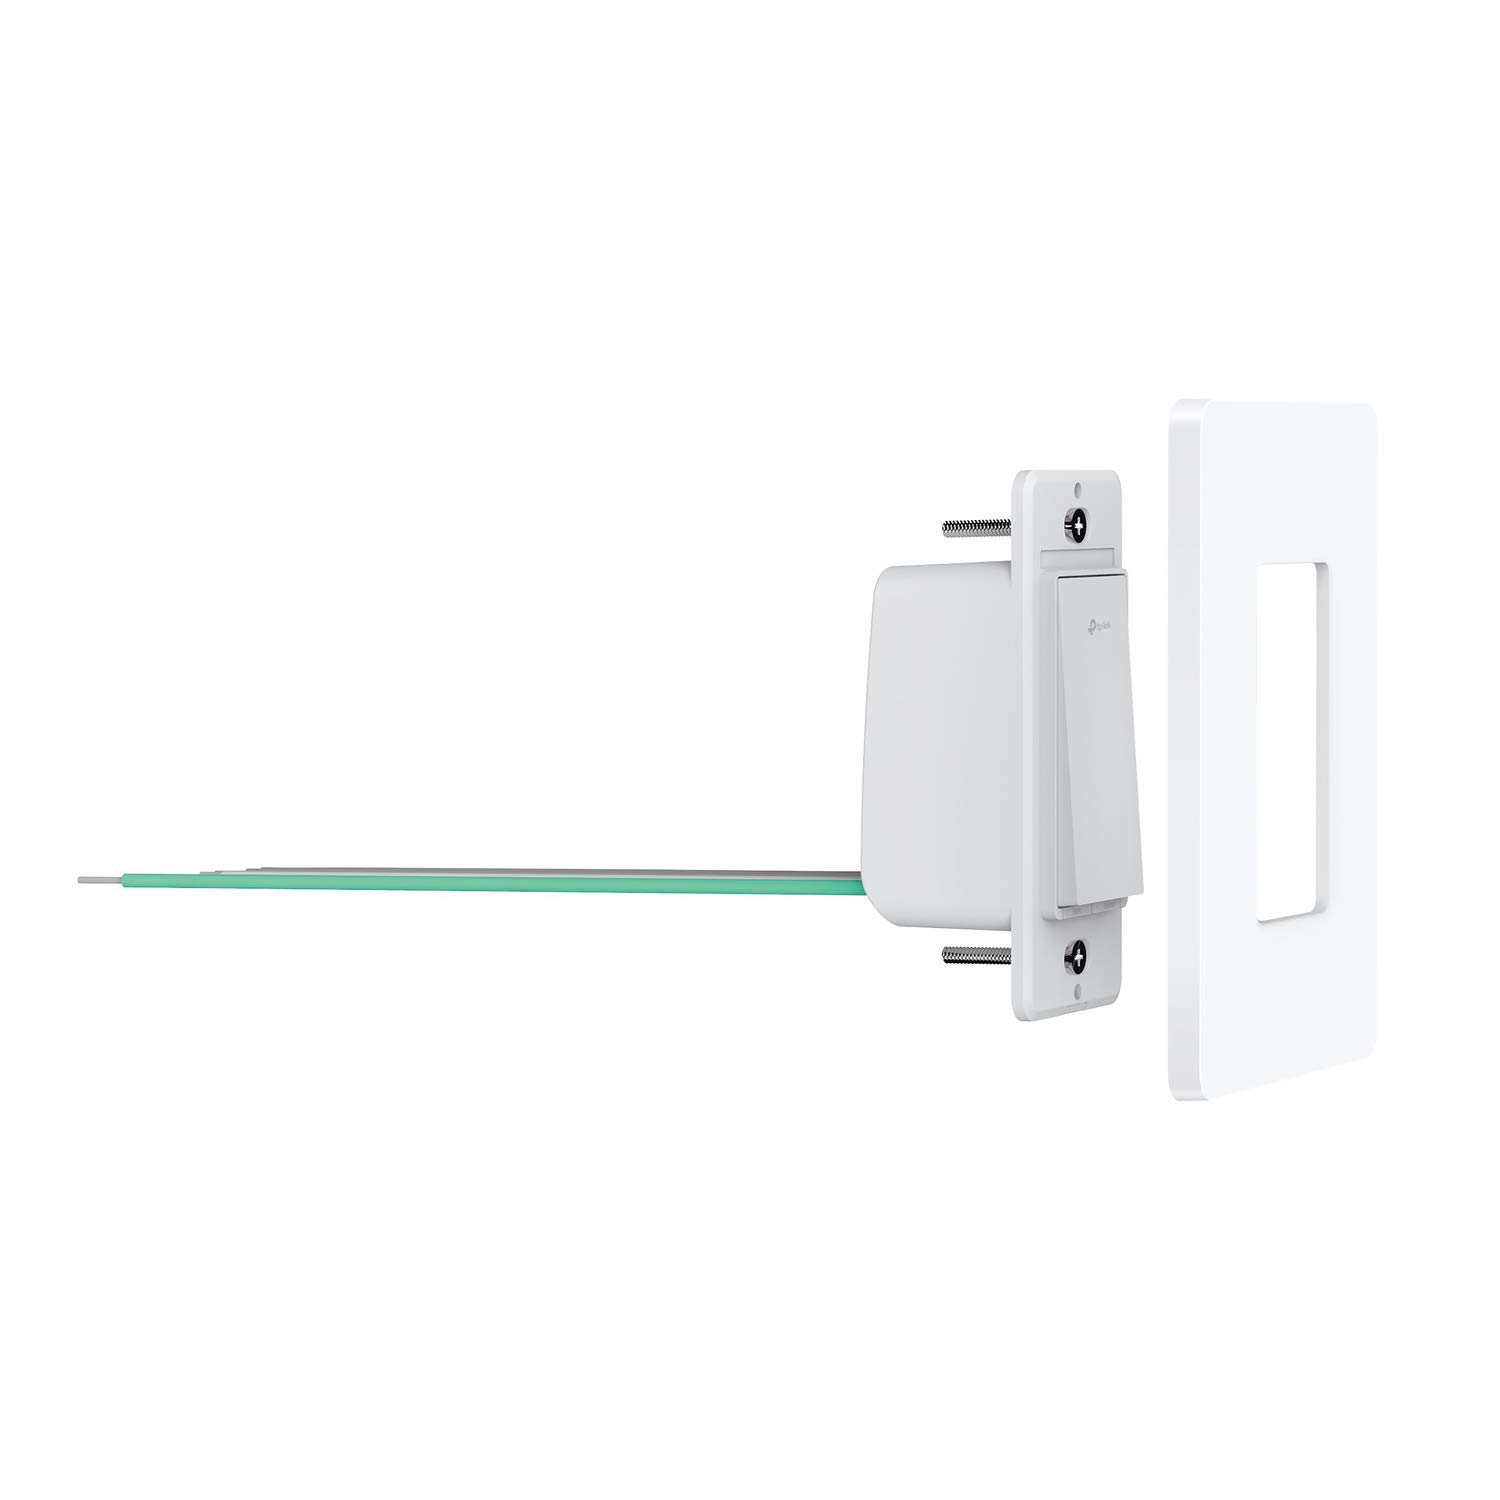 TP-LINK HS200P3 Kasa Smart WiFi Switch (3-Pack) Control Lighting from Anywhere, Easy in-Wall Installation (Single-Pole Only), No Hub Required, Works with Alexa and Google Assistant, White by TP-LINK (Image #3)